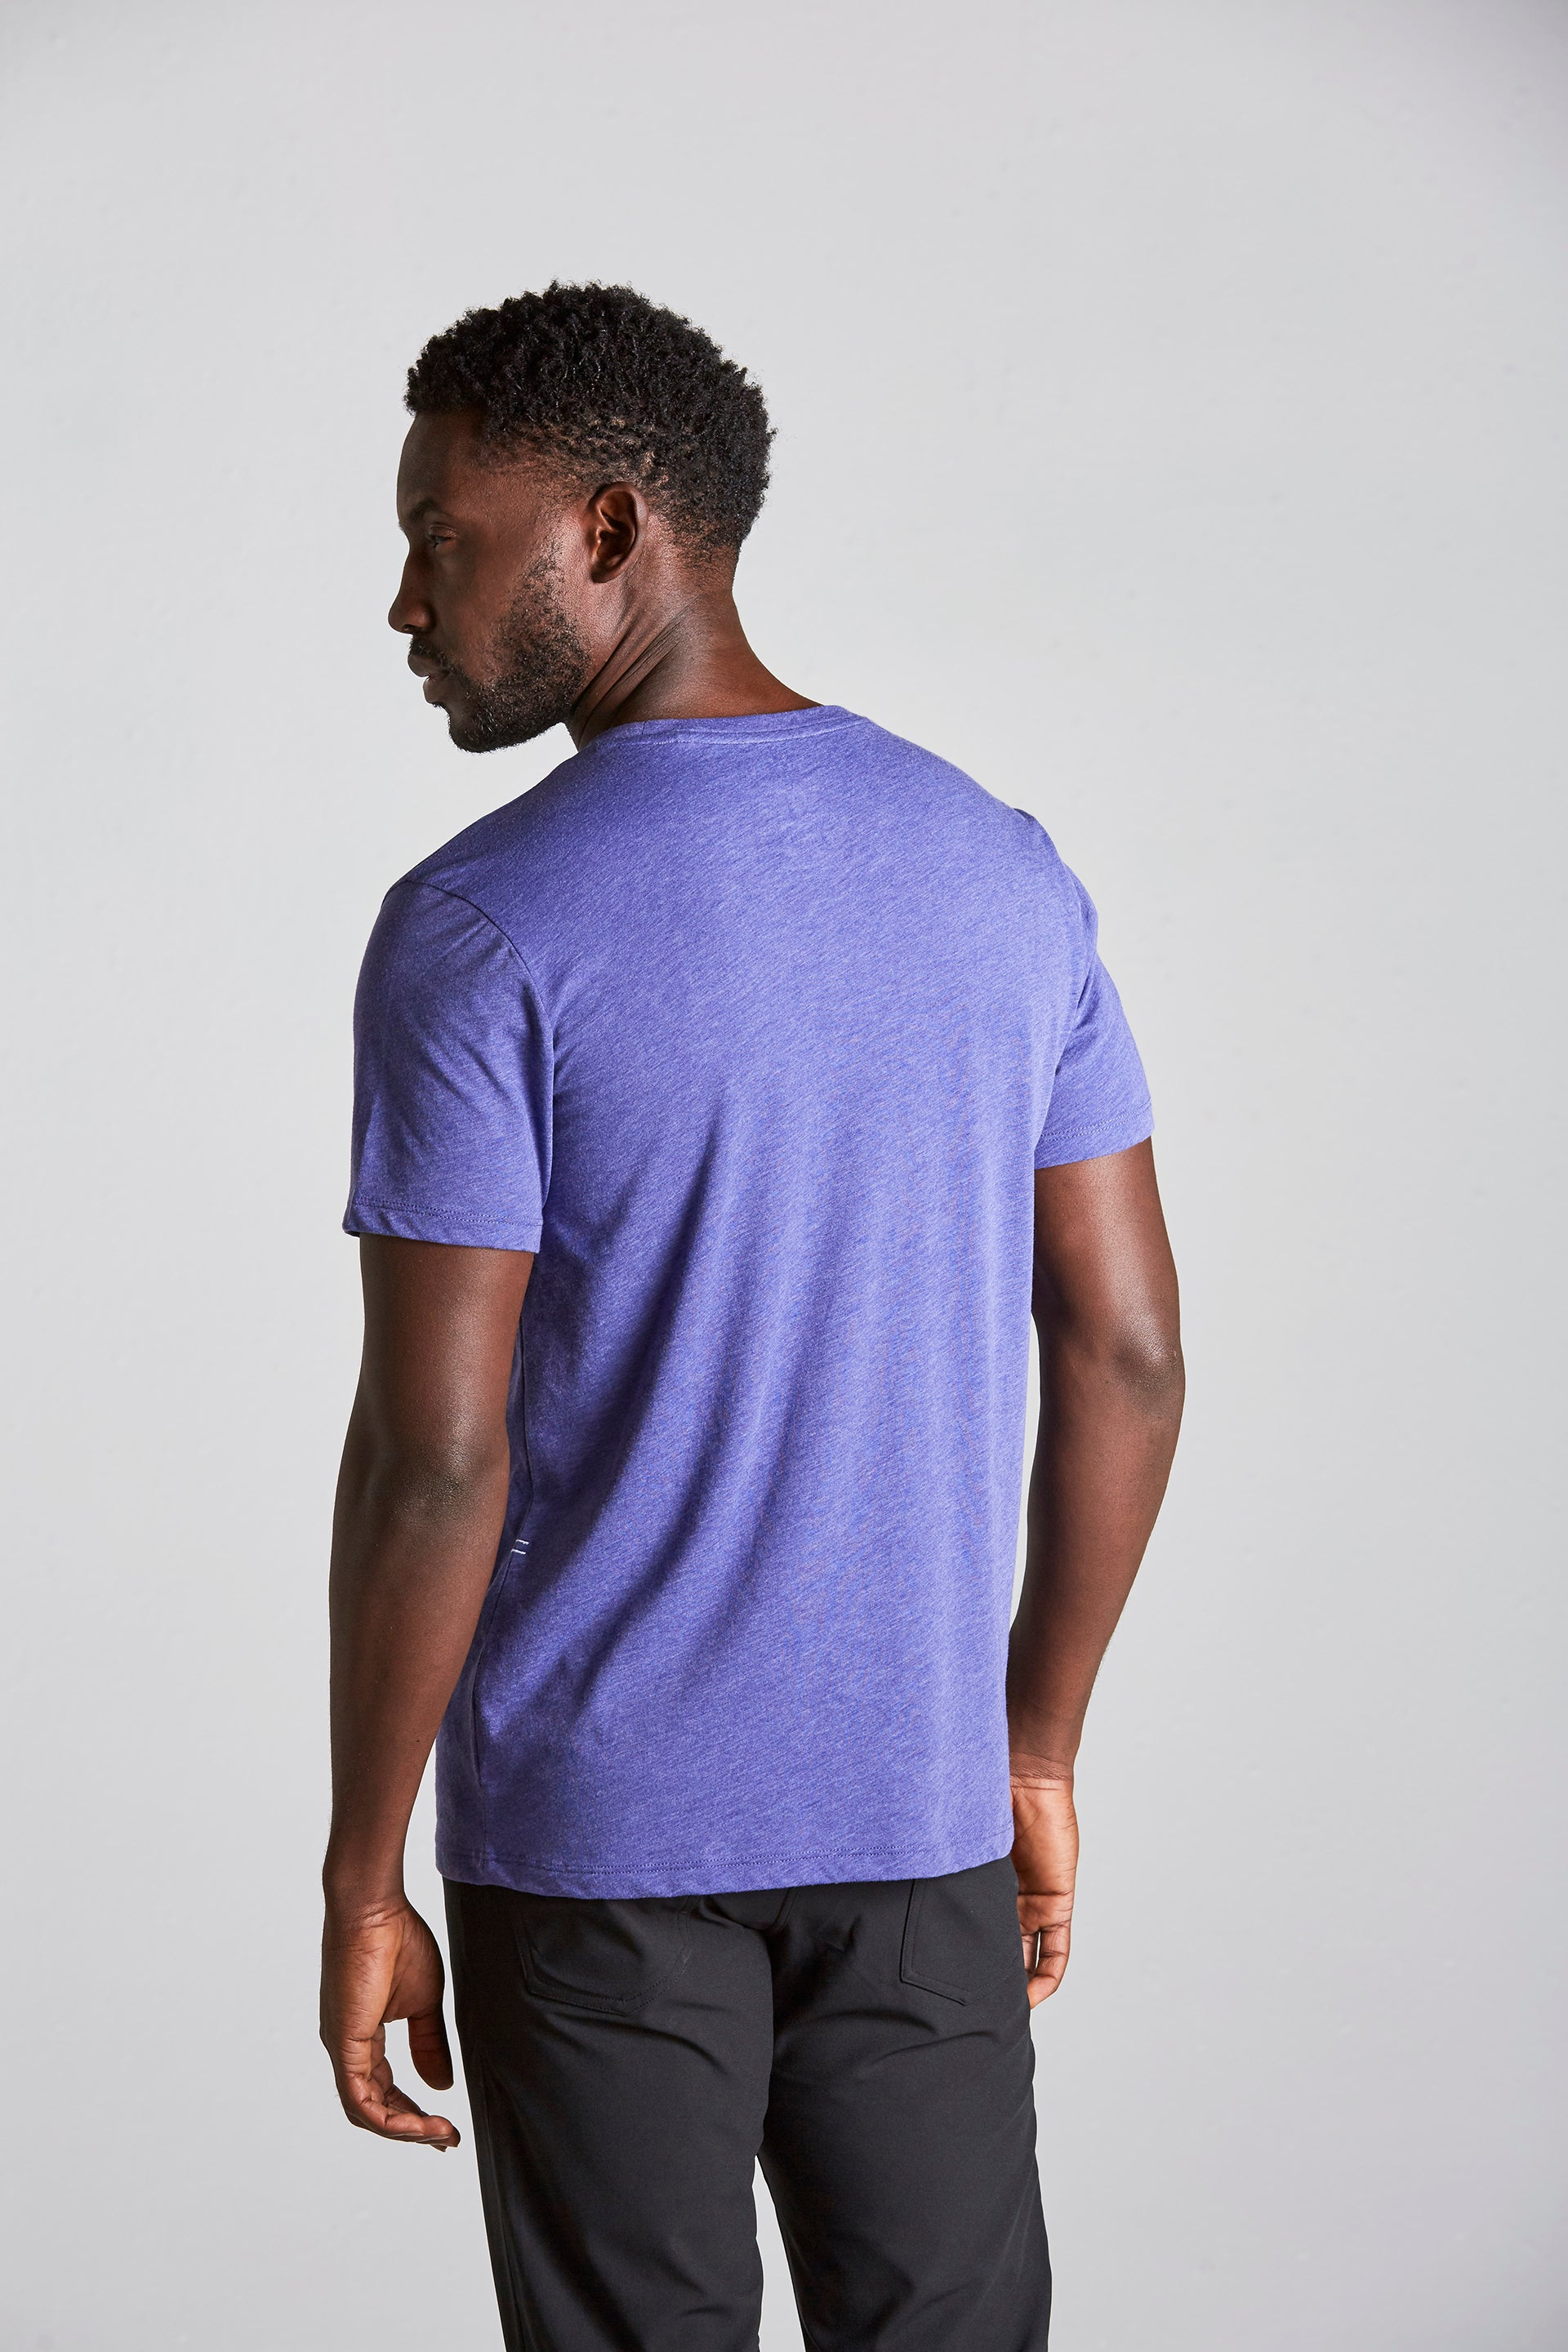 Load image into Gallery viewer, Jack Crew Short Sleeve Tee - Purple